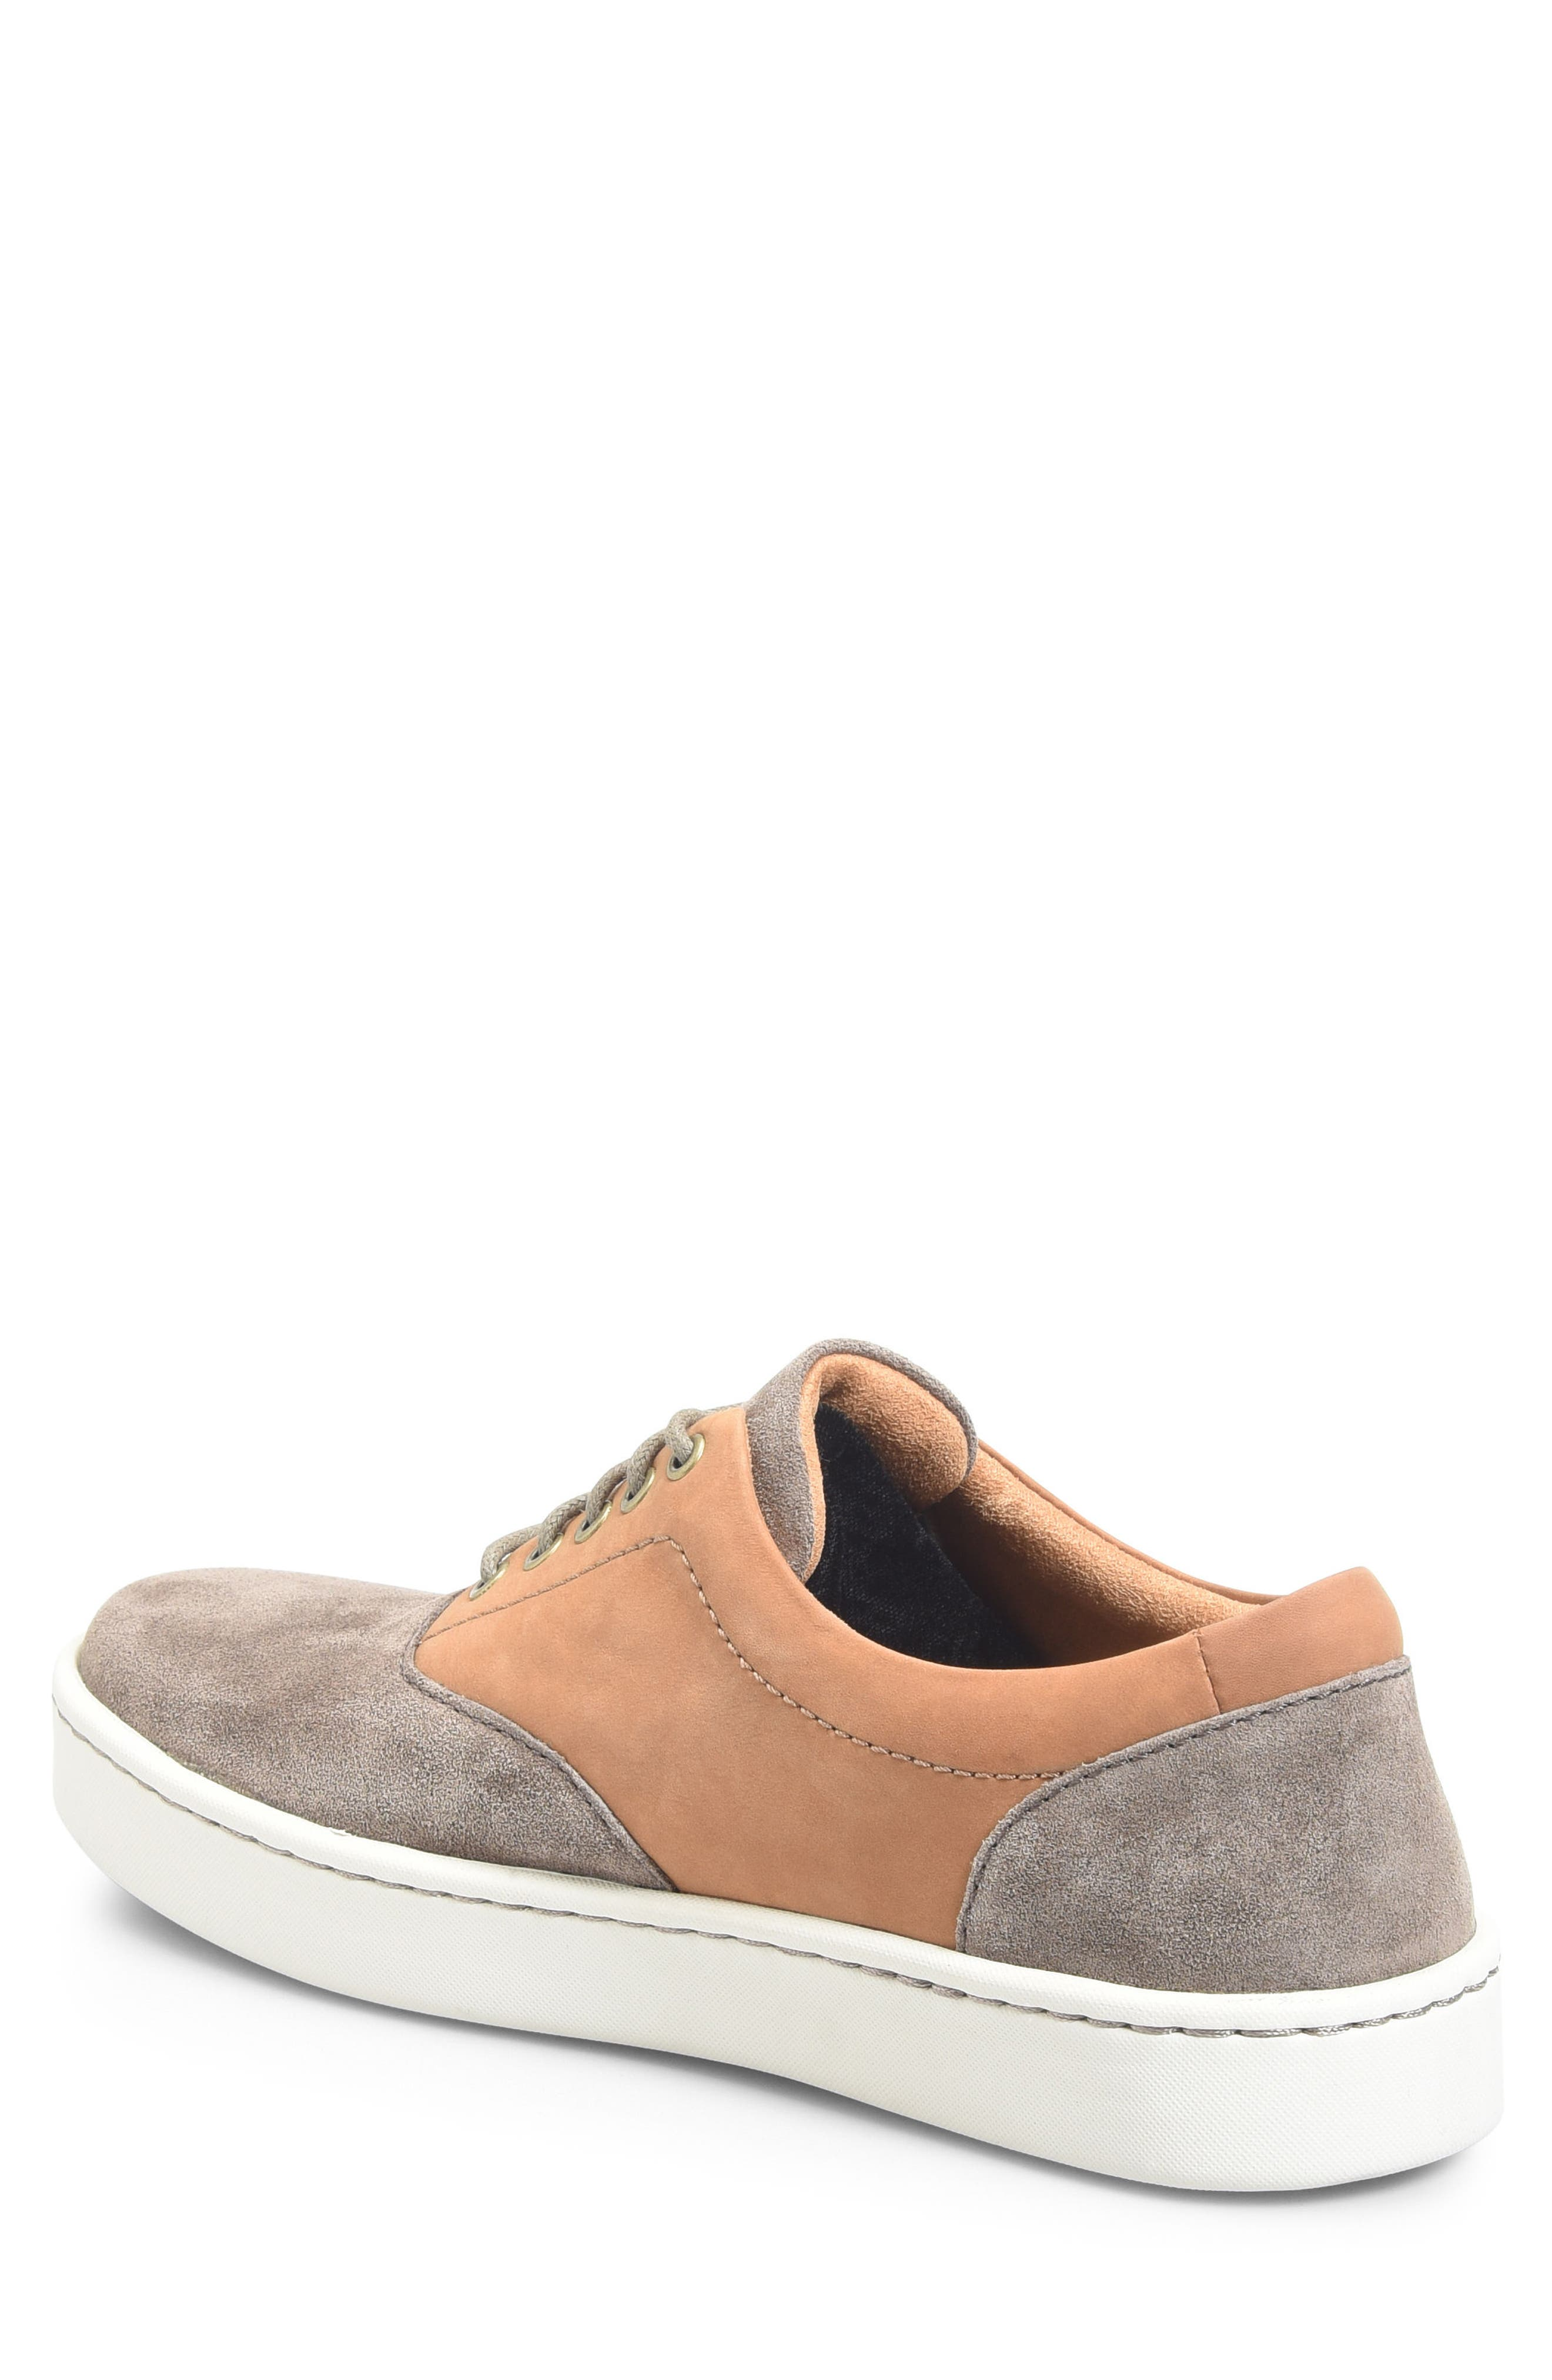 Keystone Low Top Sneaker,                             Alternate thumbnail 2, color,                             Taupe Leather